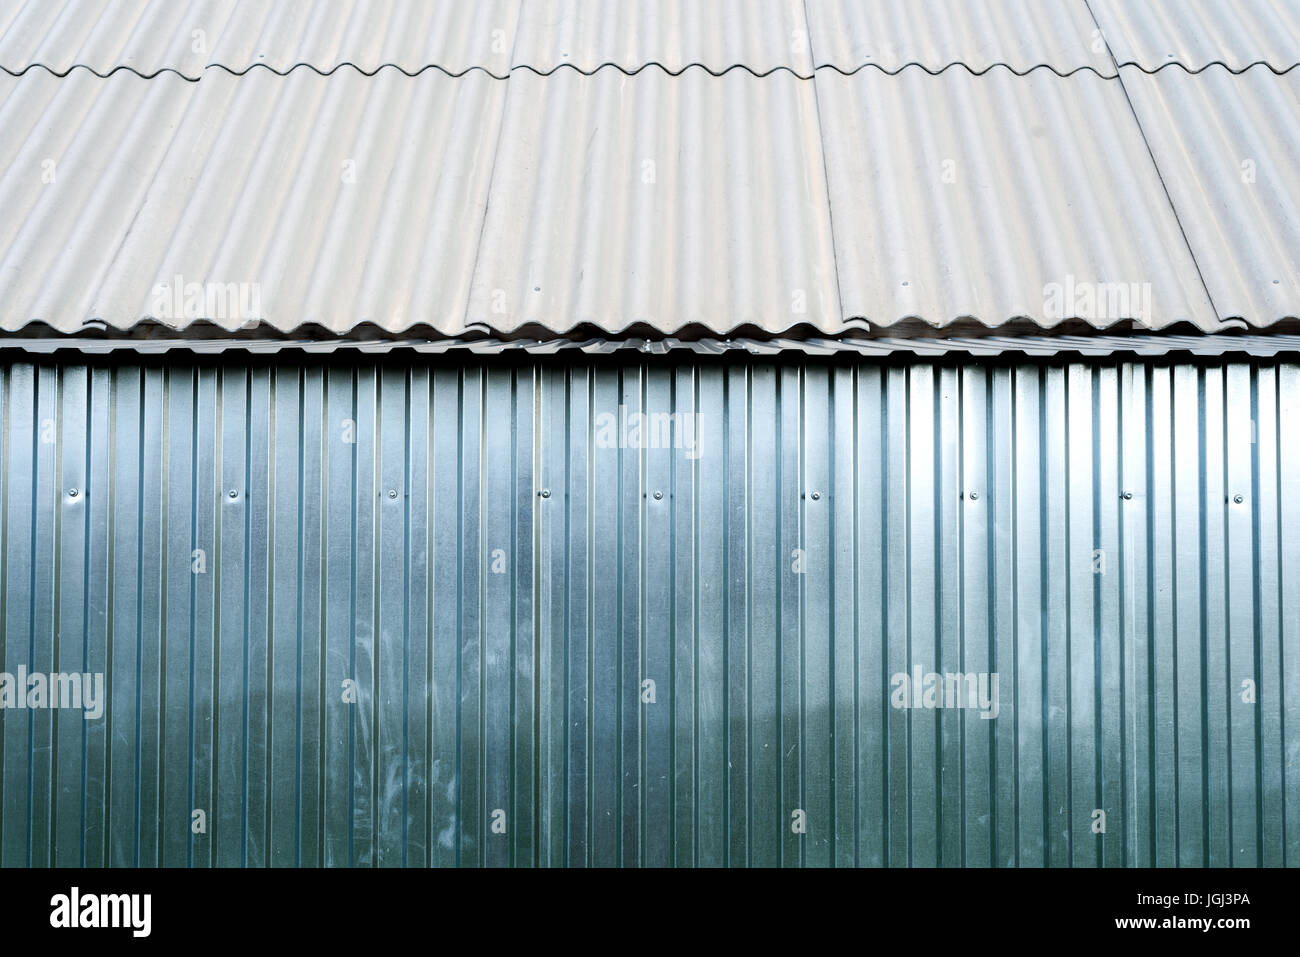 Sheet metal Aluminum in silver color often used for fencing, roofing ...